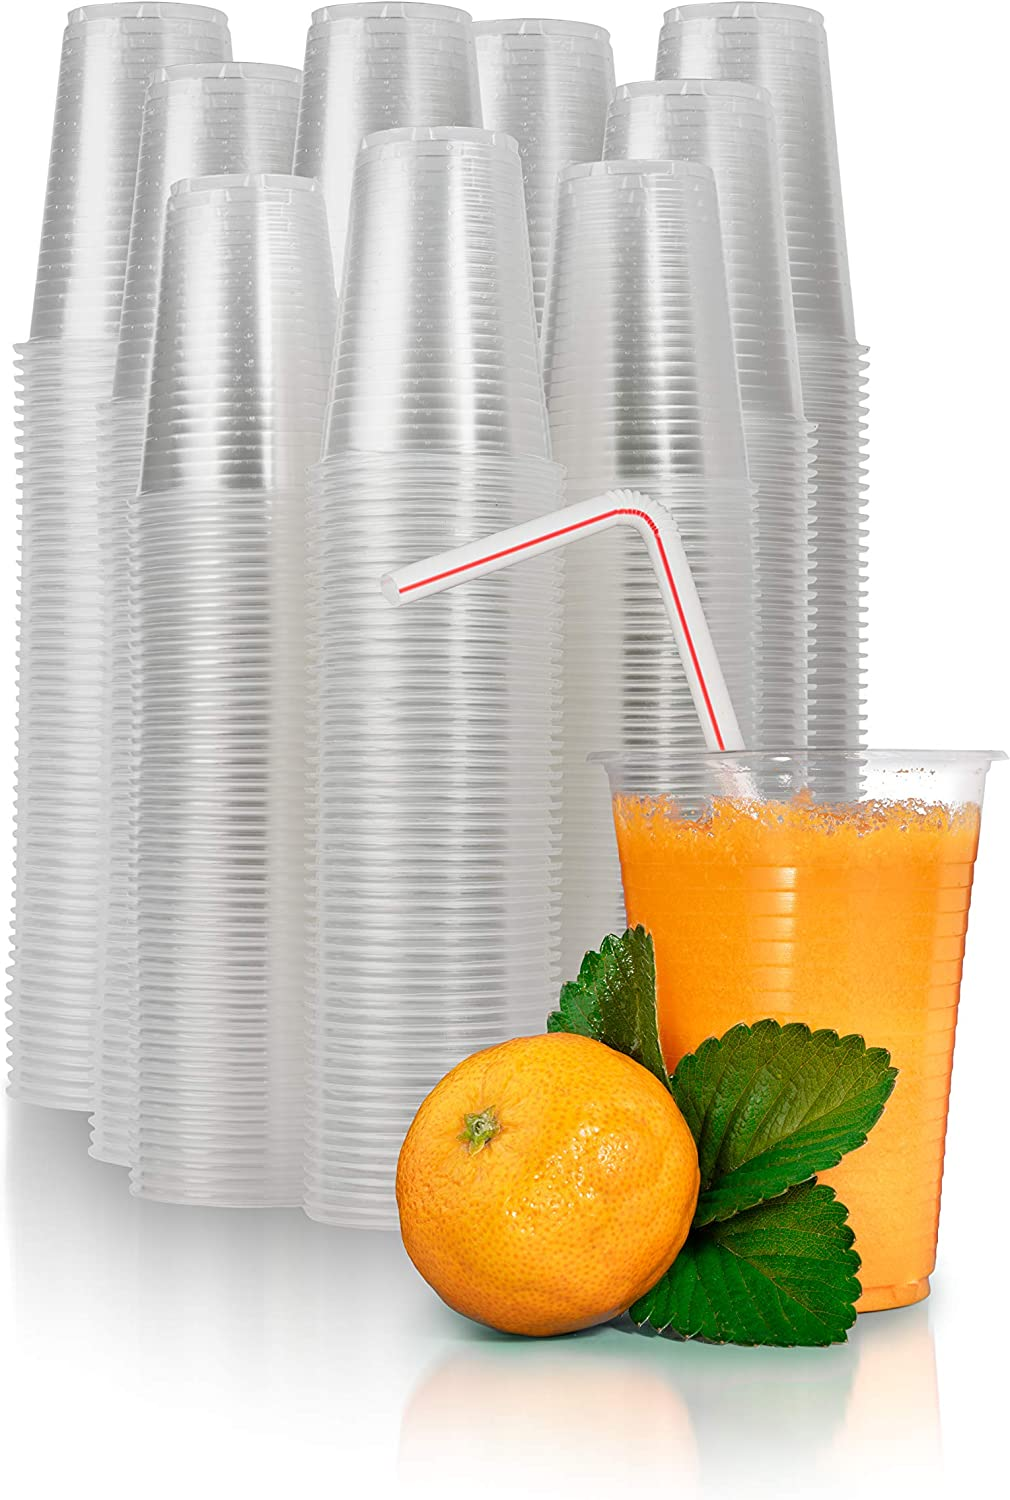 Catergoods 700 Count Bulk Pack - 7 oz Clear Plastic Cups - Transparent Plastic Disposable Cups Multi Use Cold Beverage Plastic Clear Cups for Home ~ Office ~ Parties And More